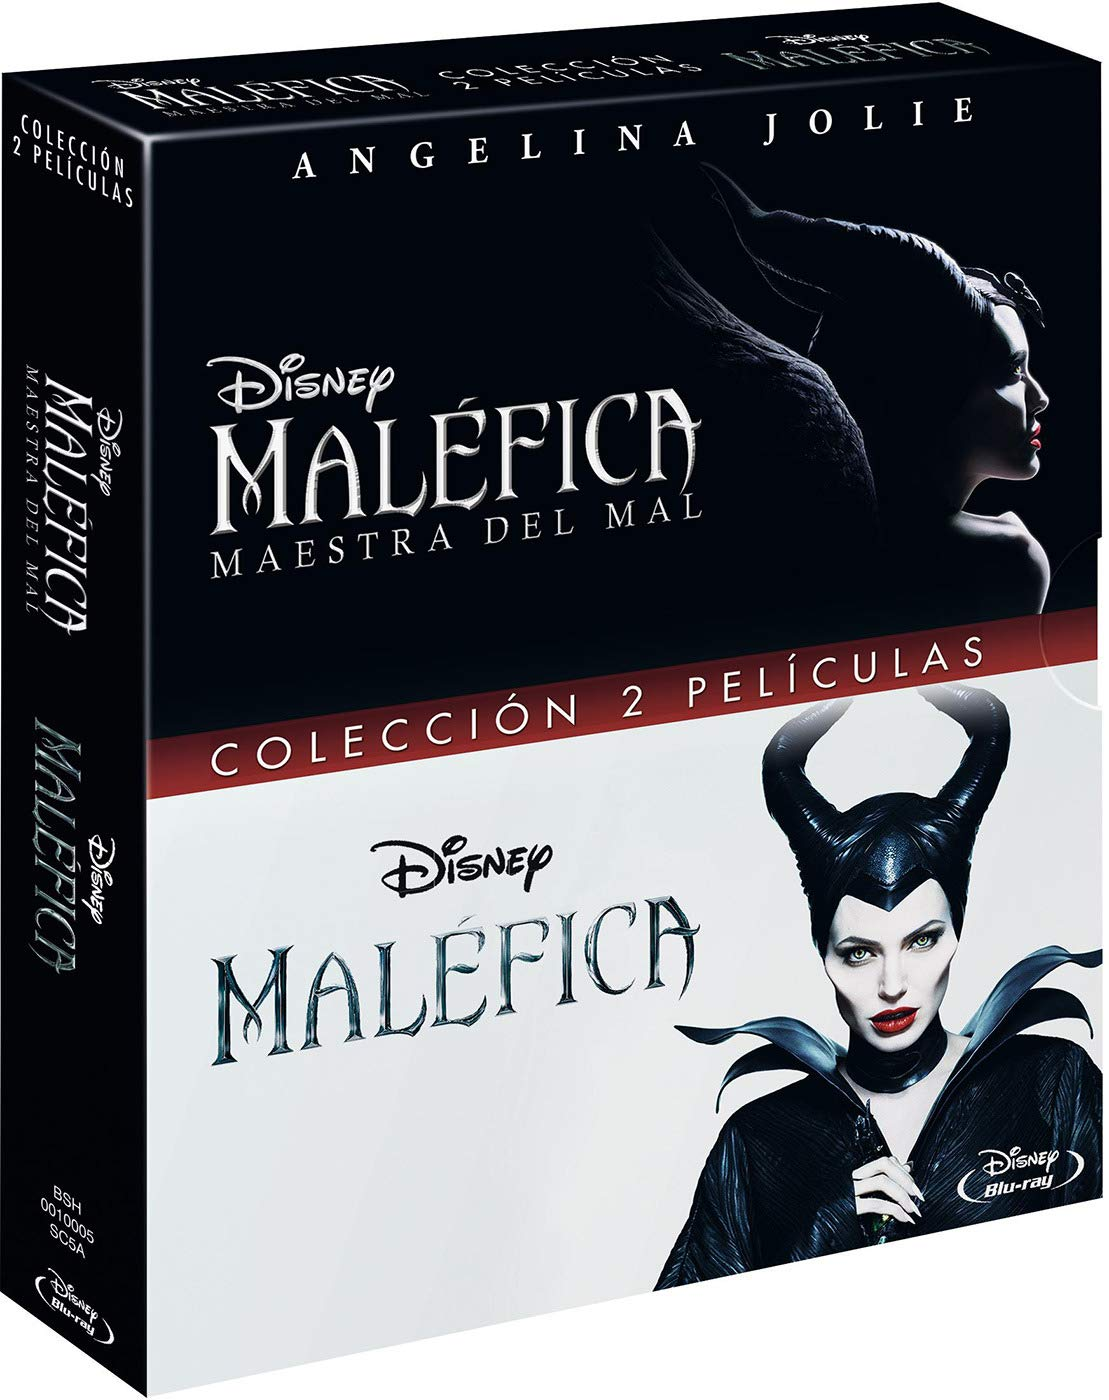 Pack BD Maléfica Maestra del Mal + Malefica [Blu-ray]: Amazon.es: Angelina Jolie, Michelle Pfeiffer,, Robert Stromberg, Angelina Jolie, Michelle Pfeiffer,, Robert Stromberg: Cine y Series TV